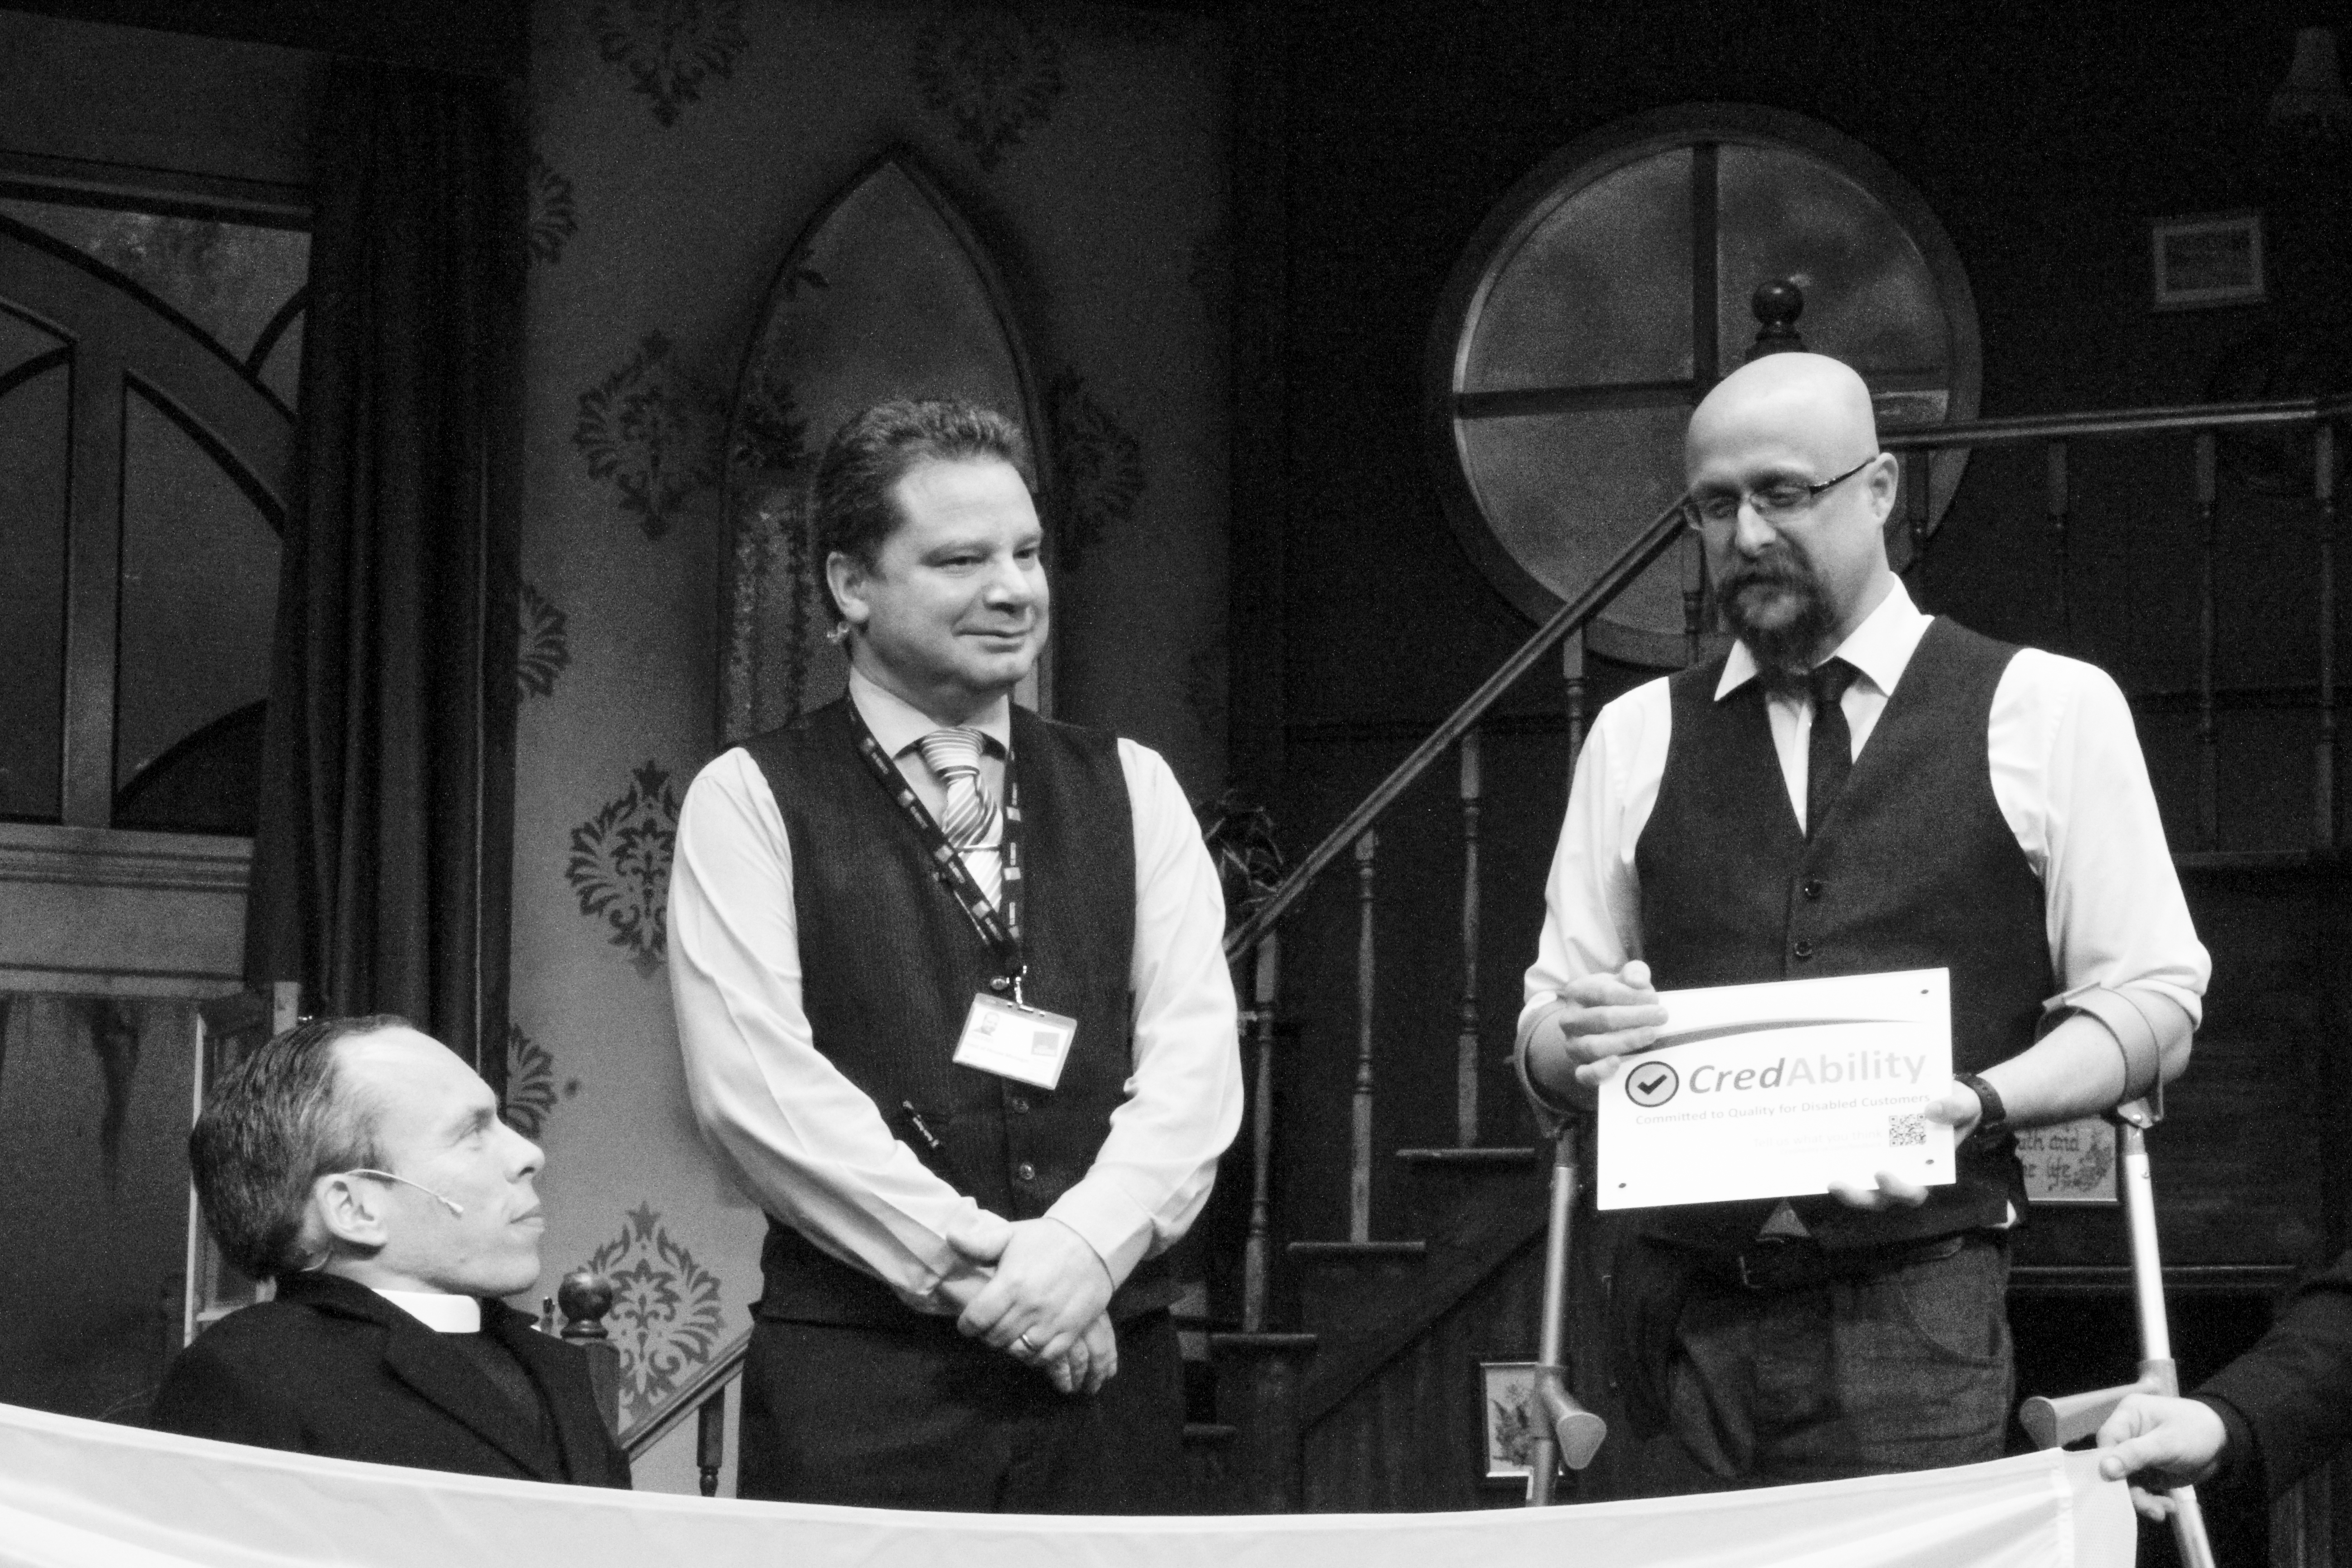 ddrby theatres receives the CRedAble Access quality mark from Warwick Davis